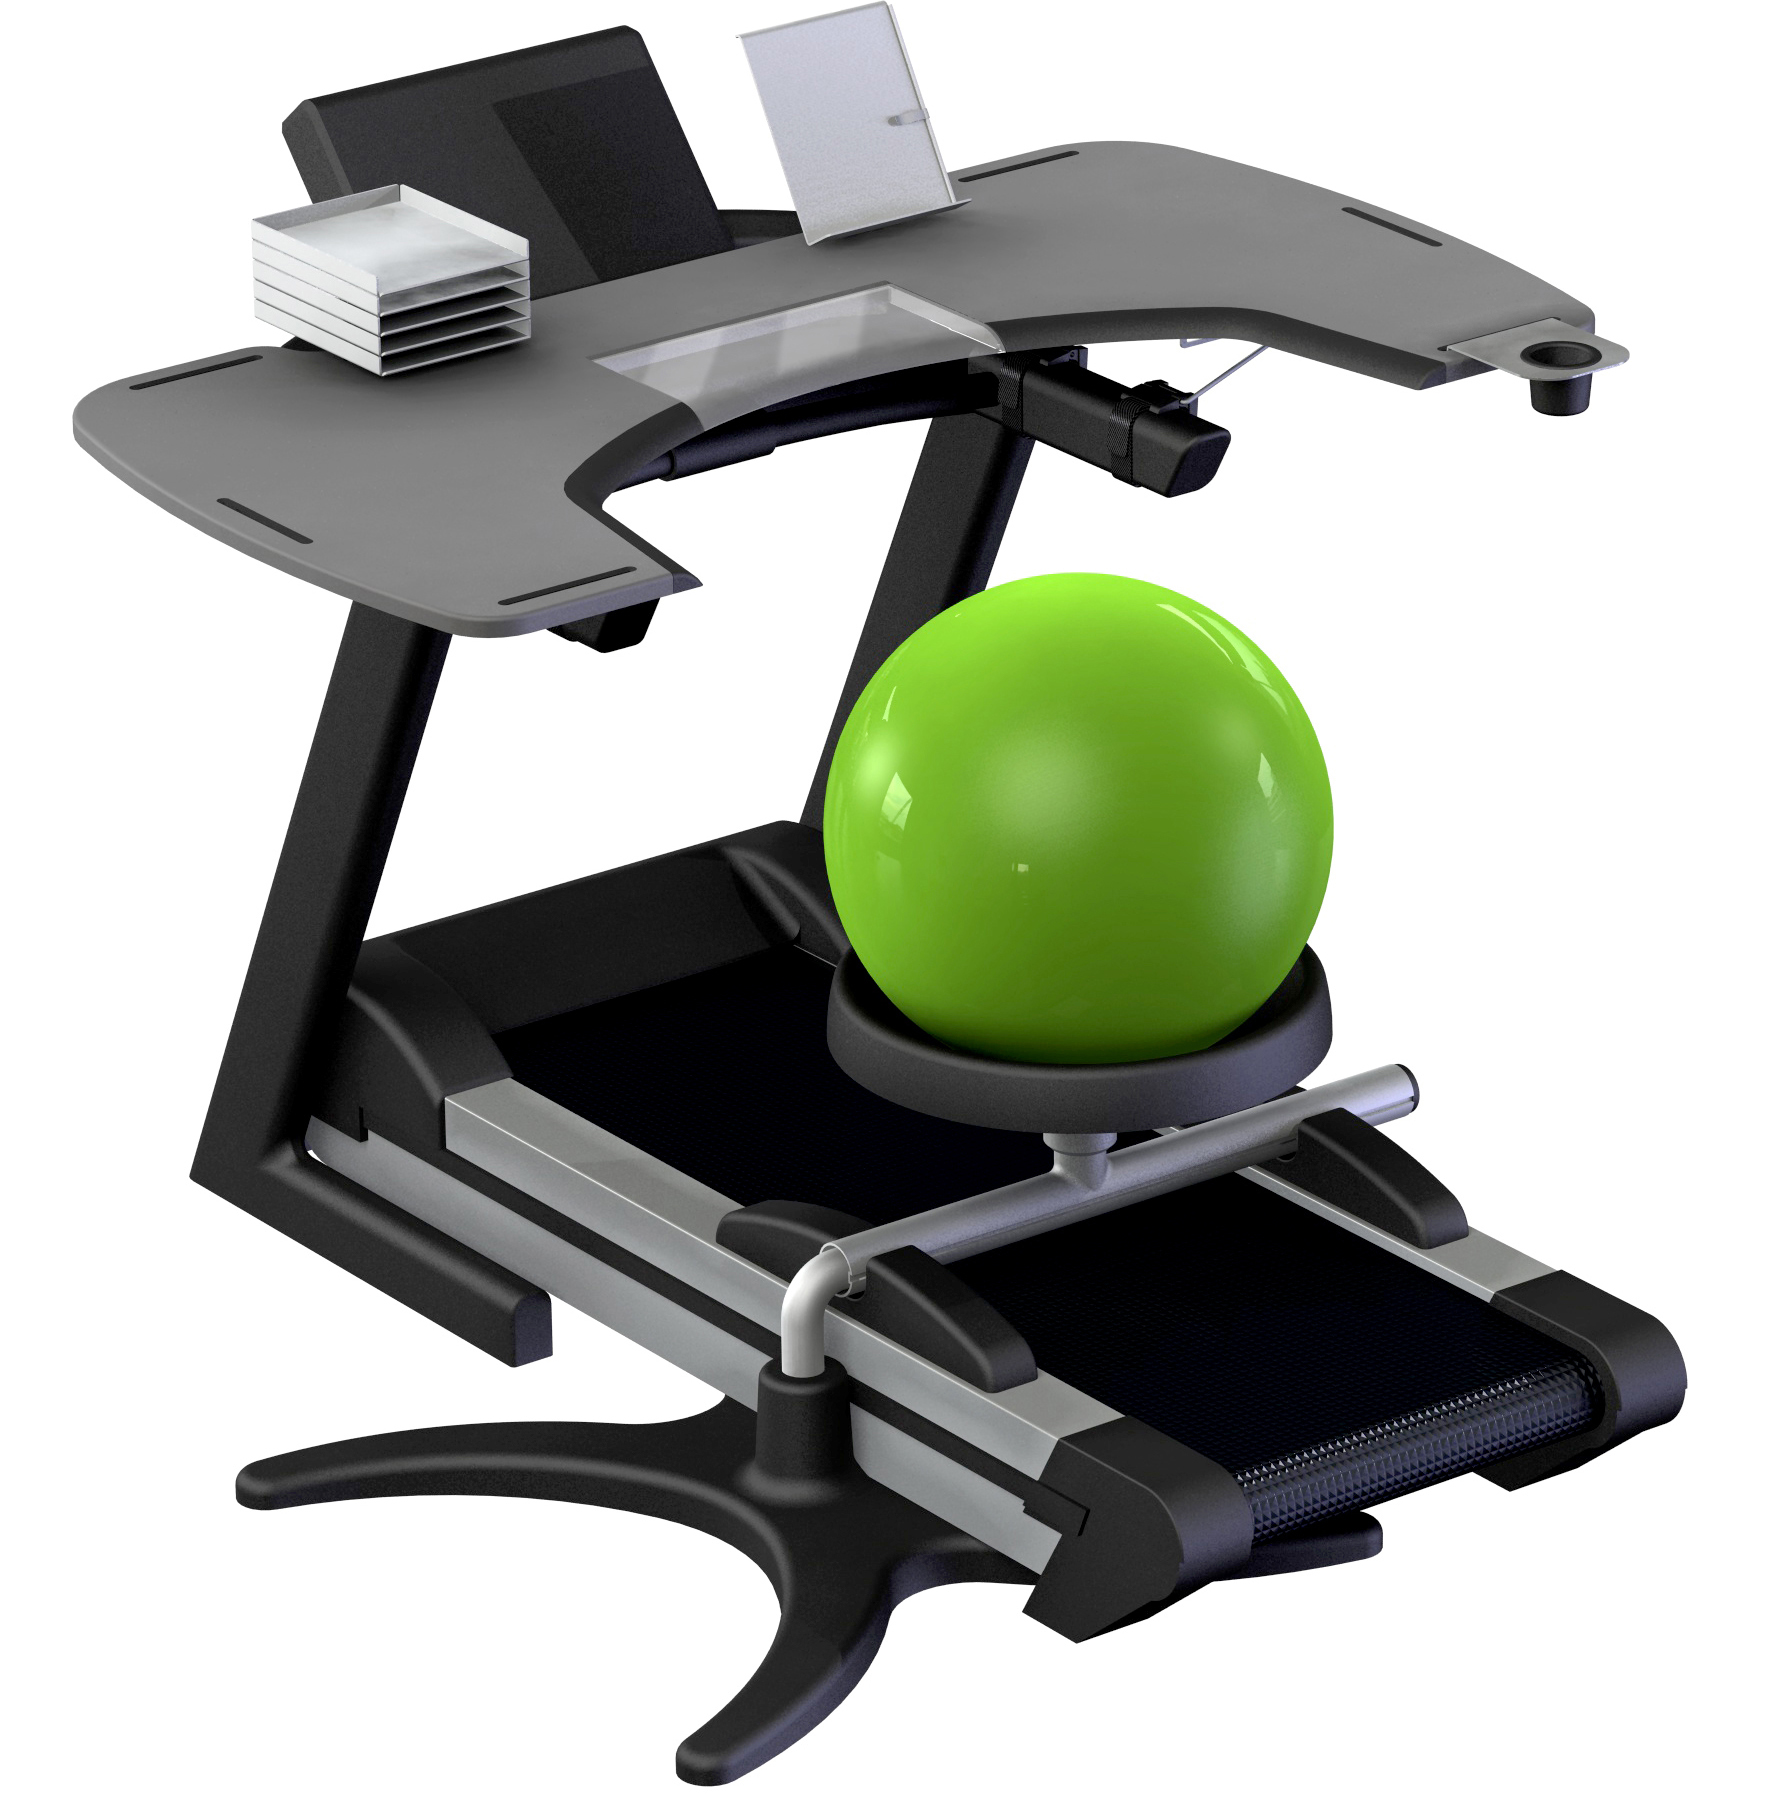 Pilates Ball Chair Trekdesk Gears Up To Alleviate Stresses Of Today 39s